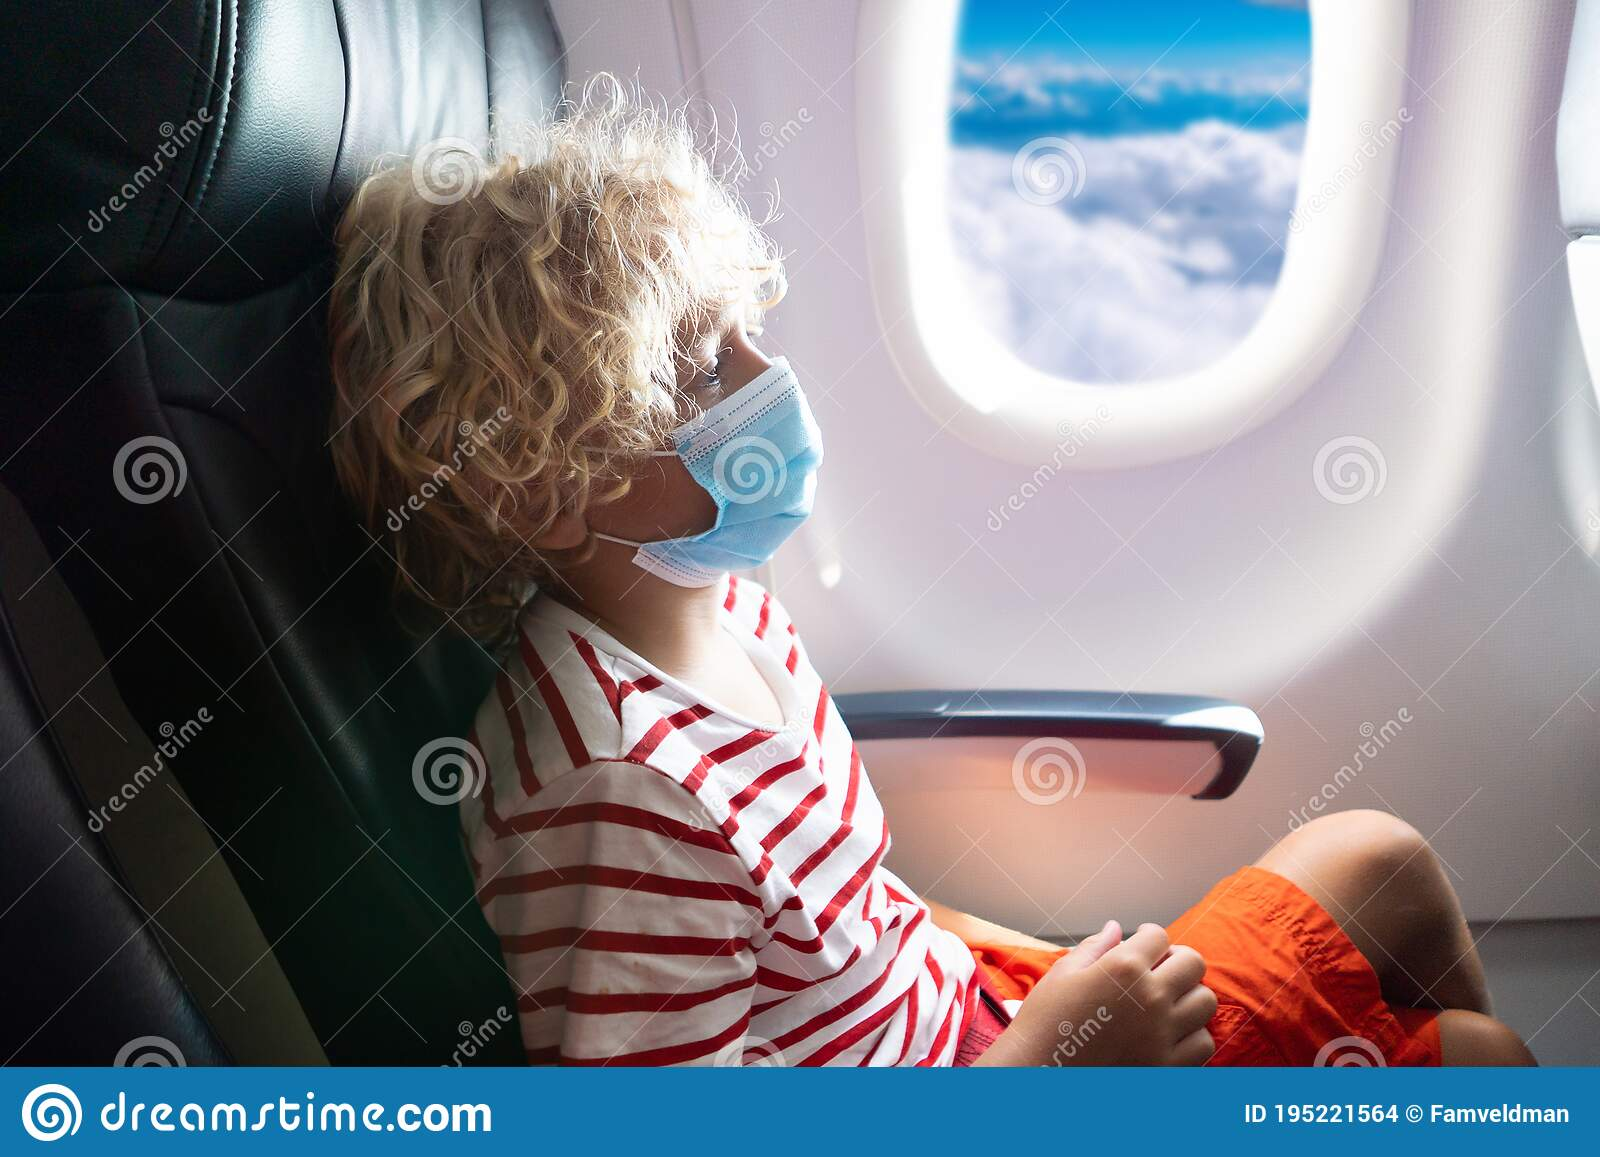 Child In Airplane In Face Mask Virus Outbreak Stock Photo Image Of Baby Germs 195221564